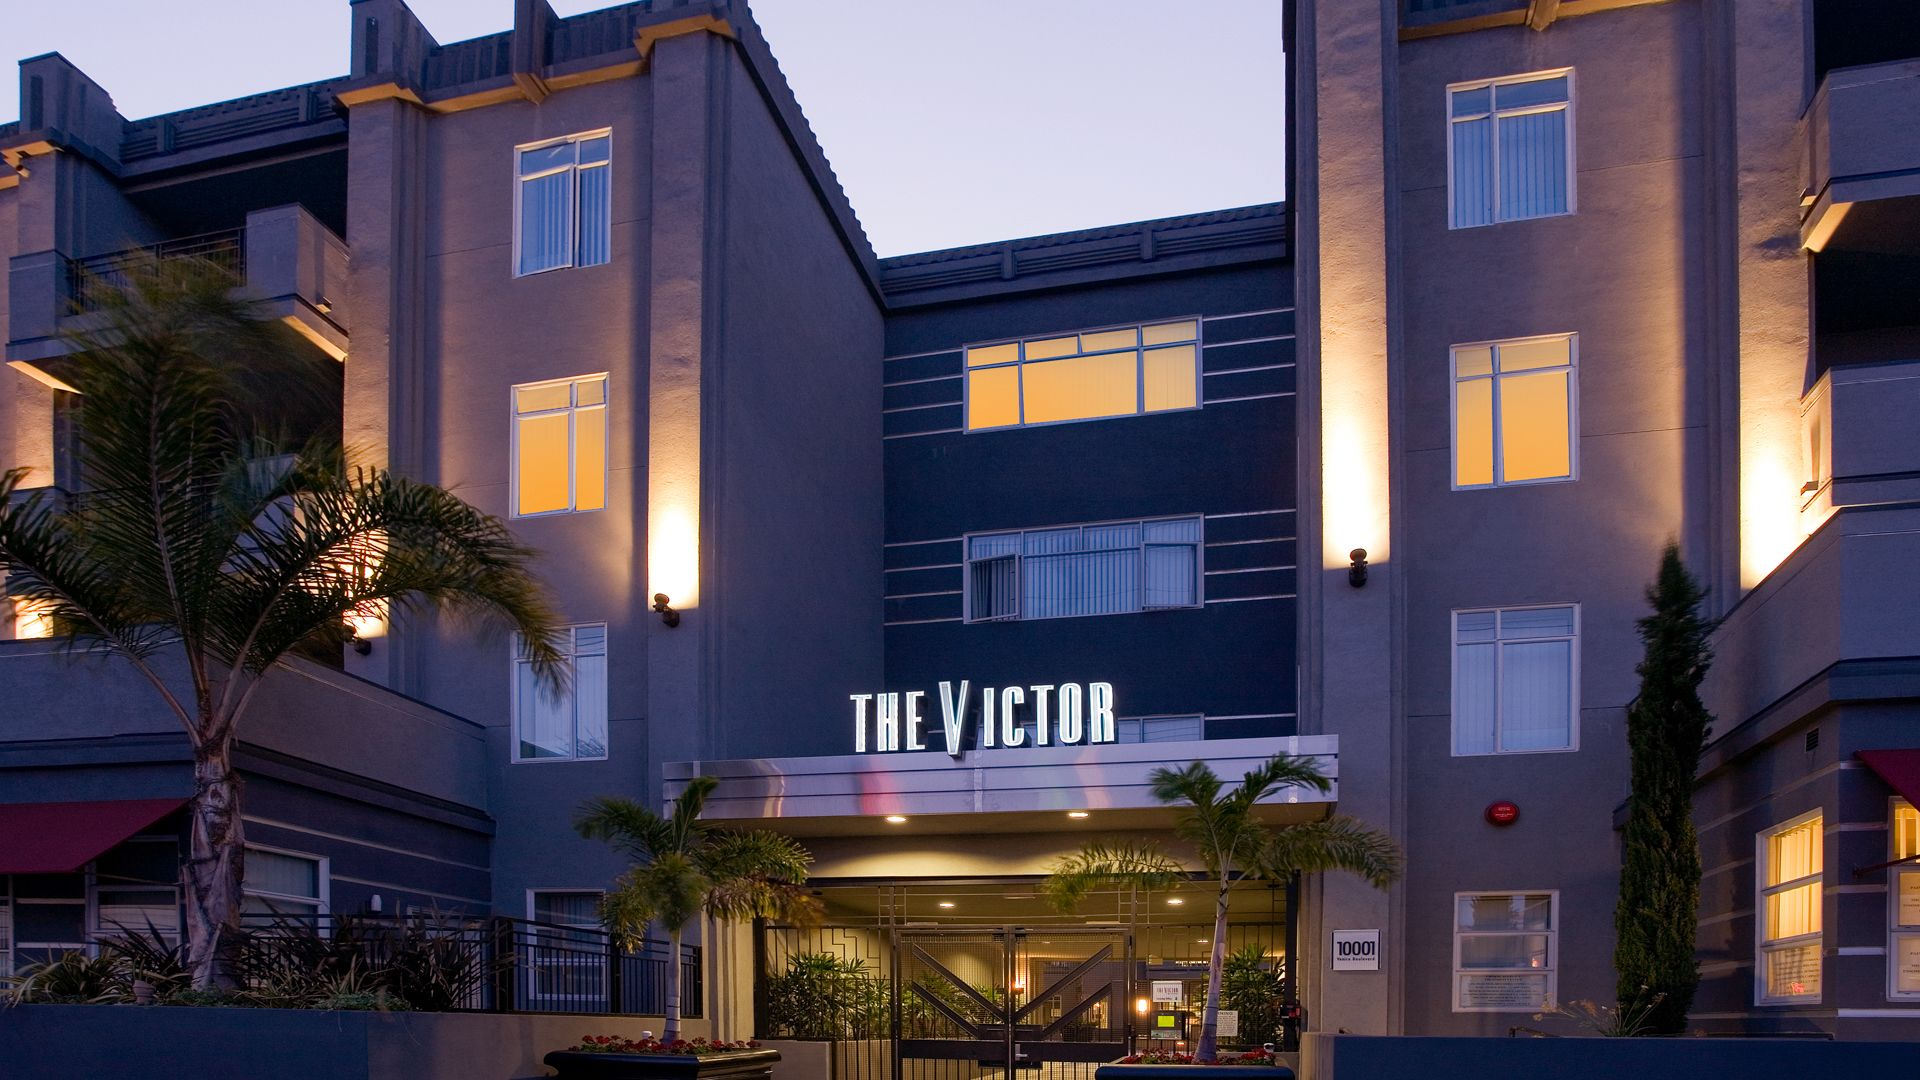 Victor on Venice Apartments - Culver City - 10001 Venice ...